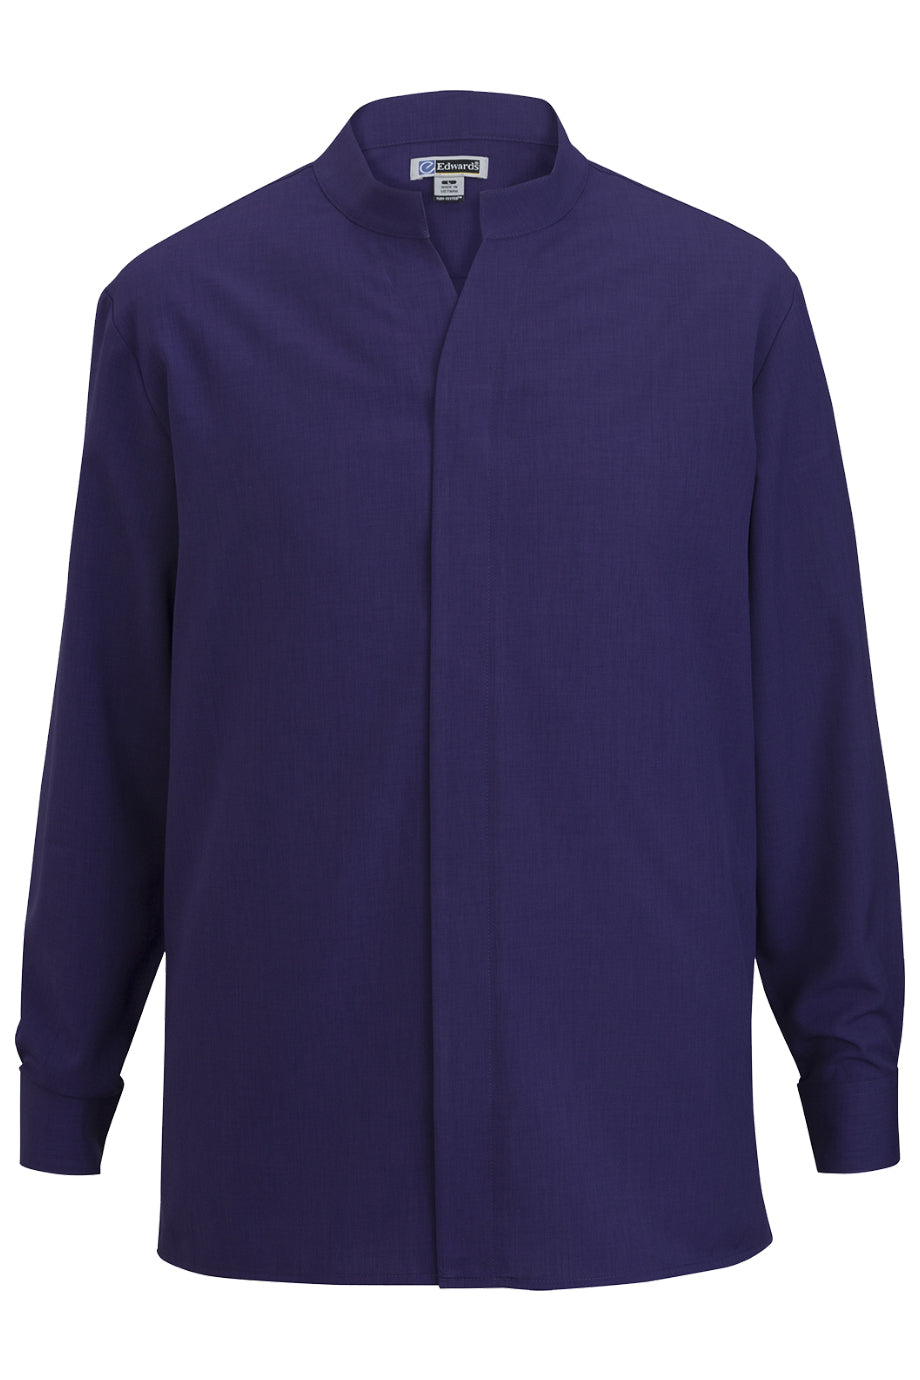 Purple Edwards Mens Stand-Up Collar Shirt